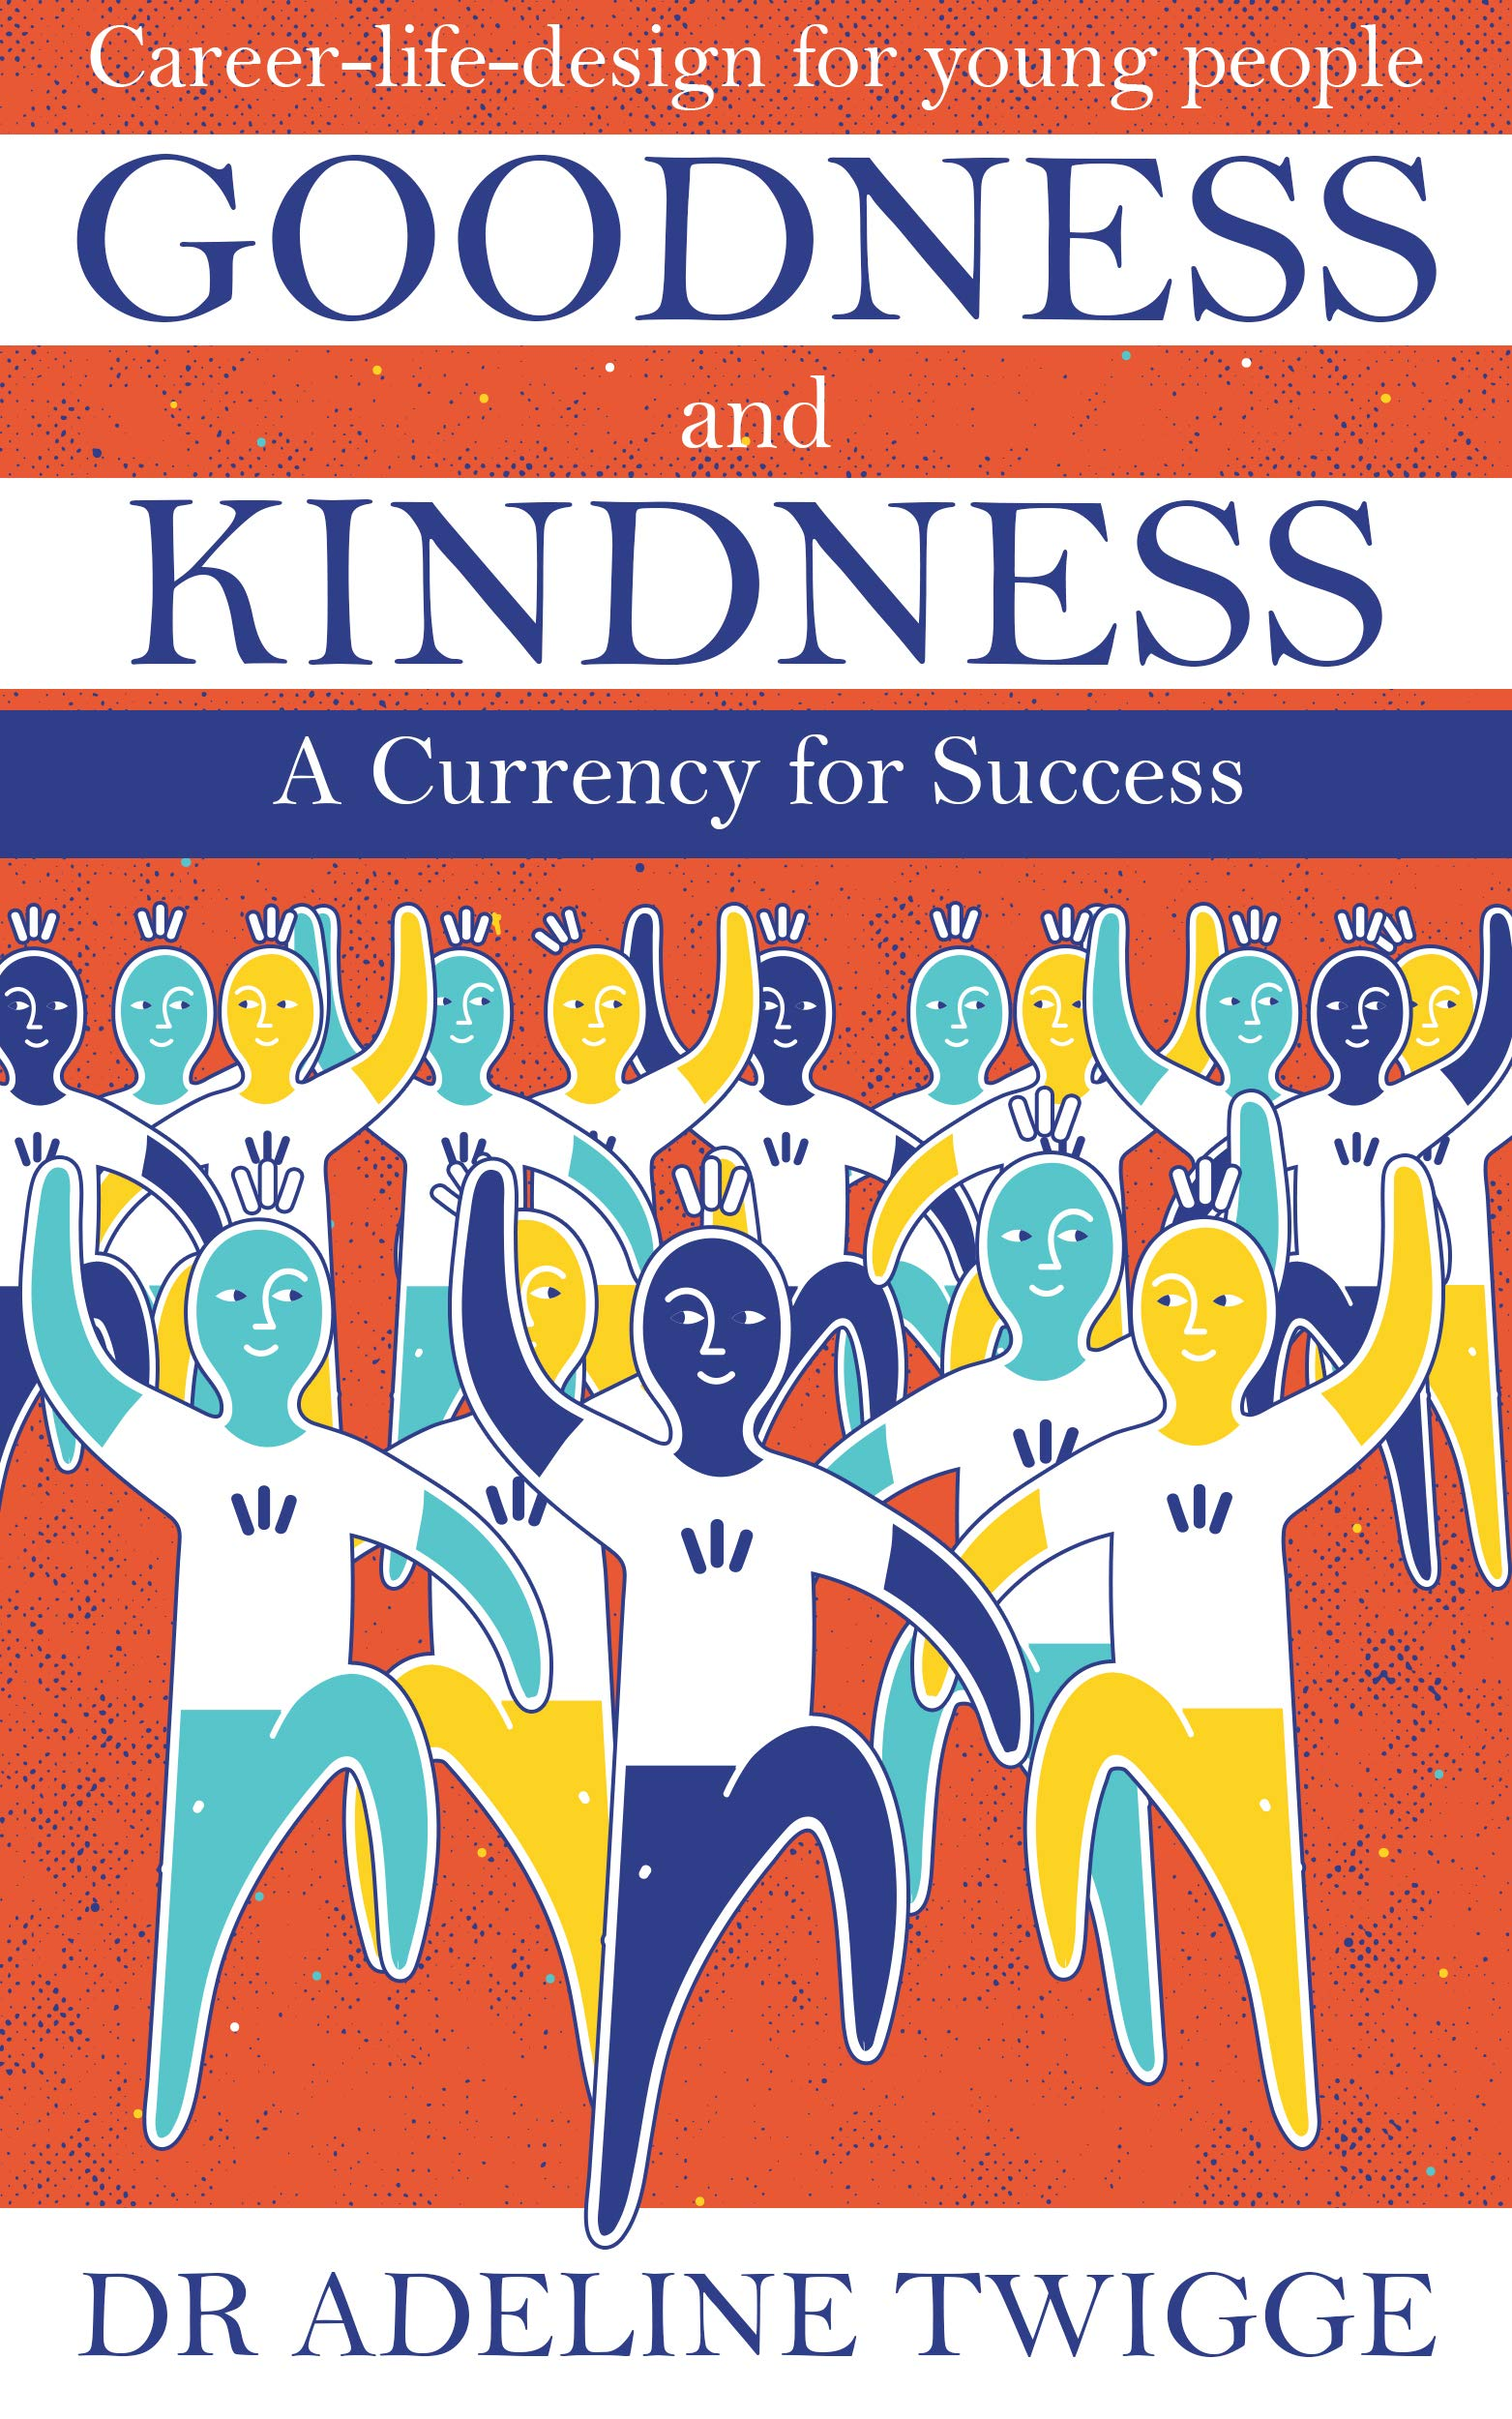 Goodness and Kindness - A Currency for Success: Career-life-design for young people